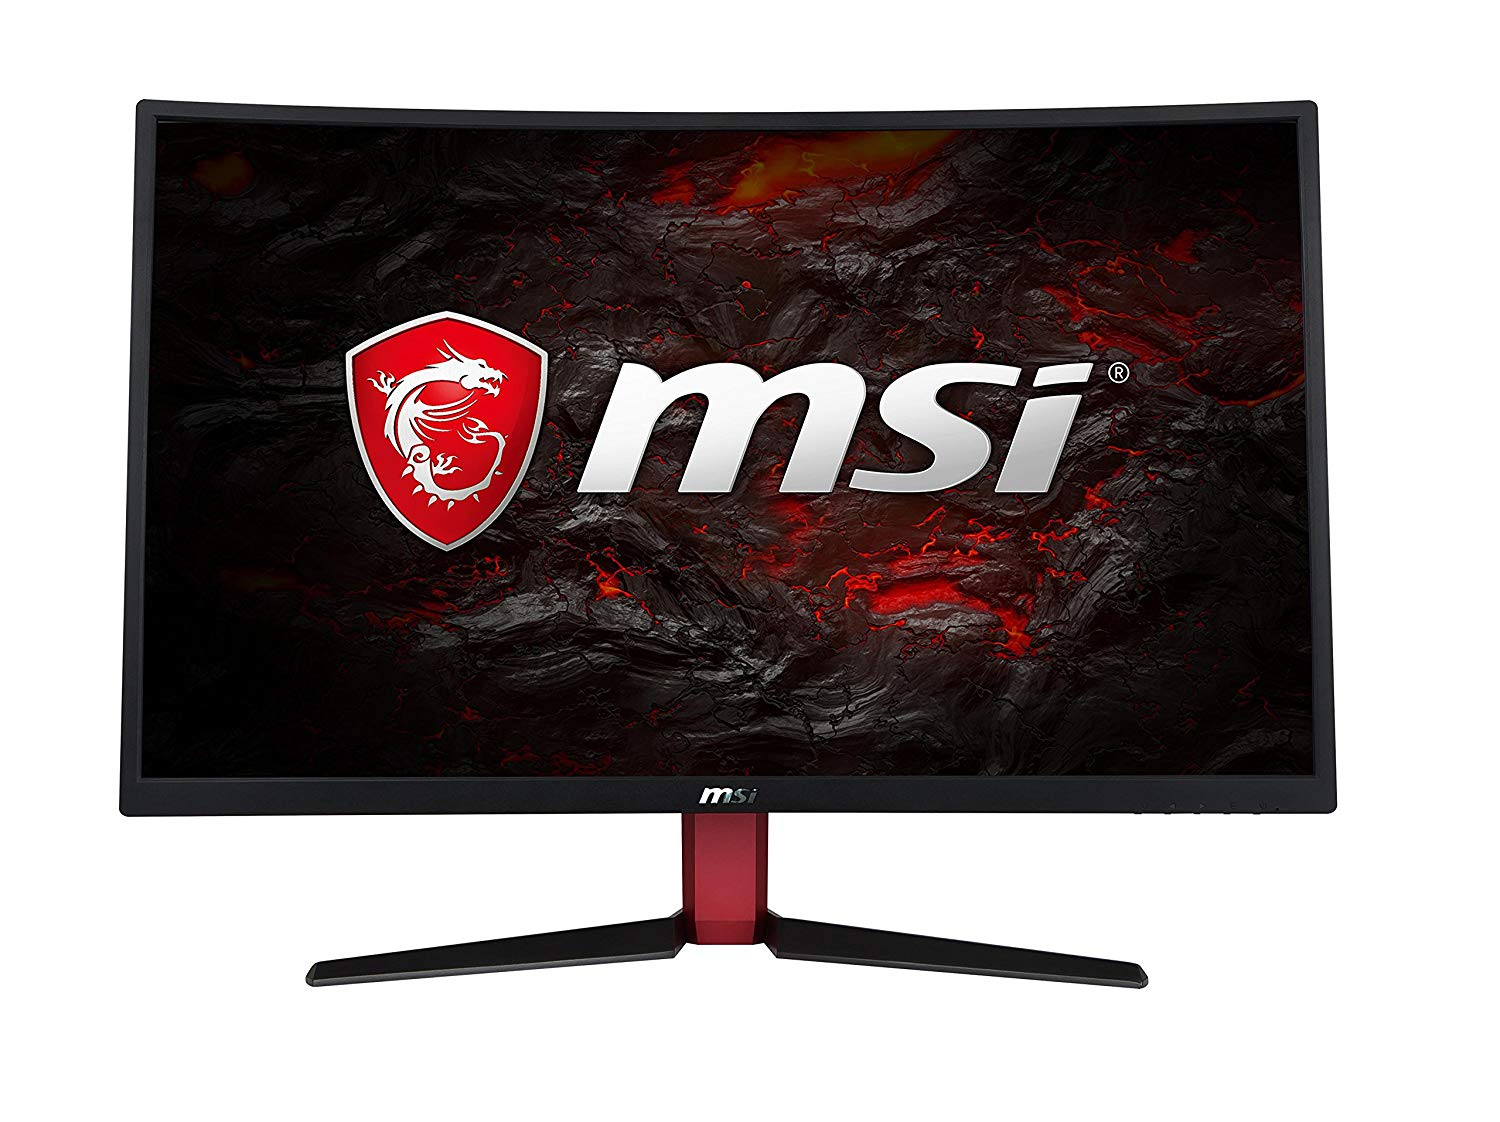 MSI Optix G27C2 144Hz, Full HD 1080p Gaming Monitor is now available for purchase for $220